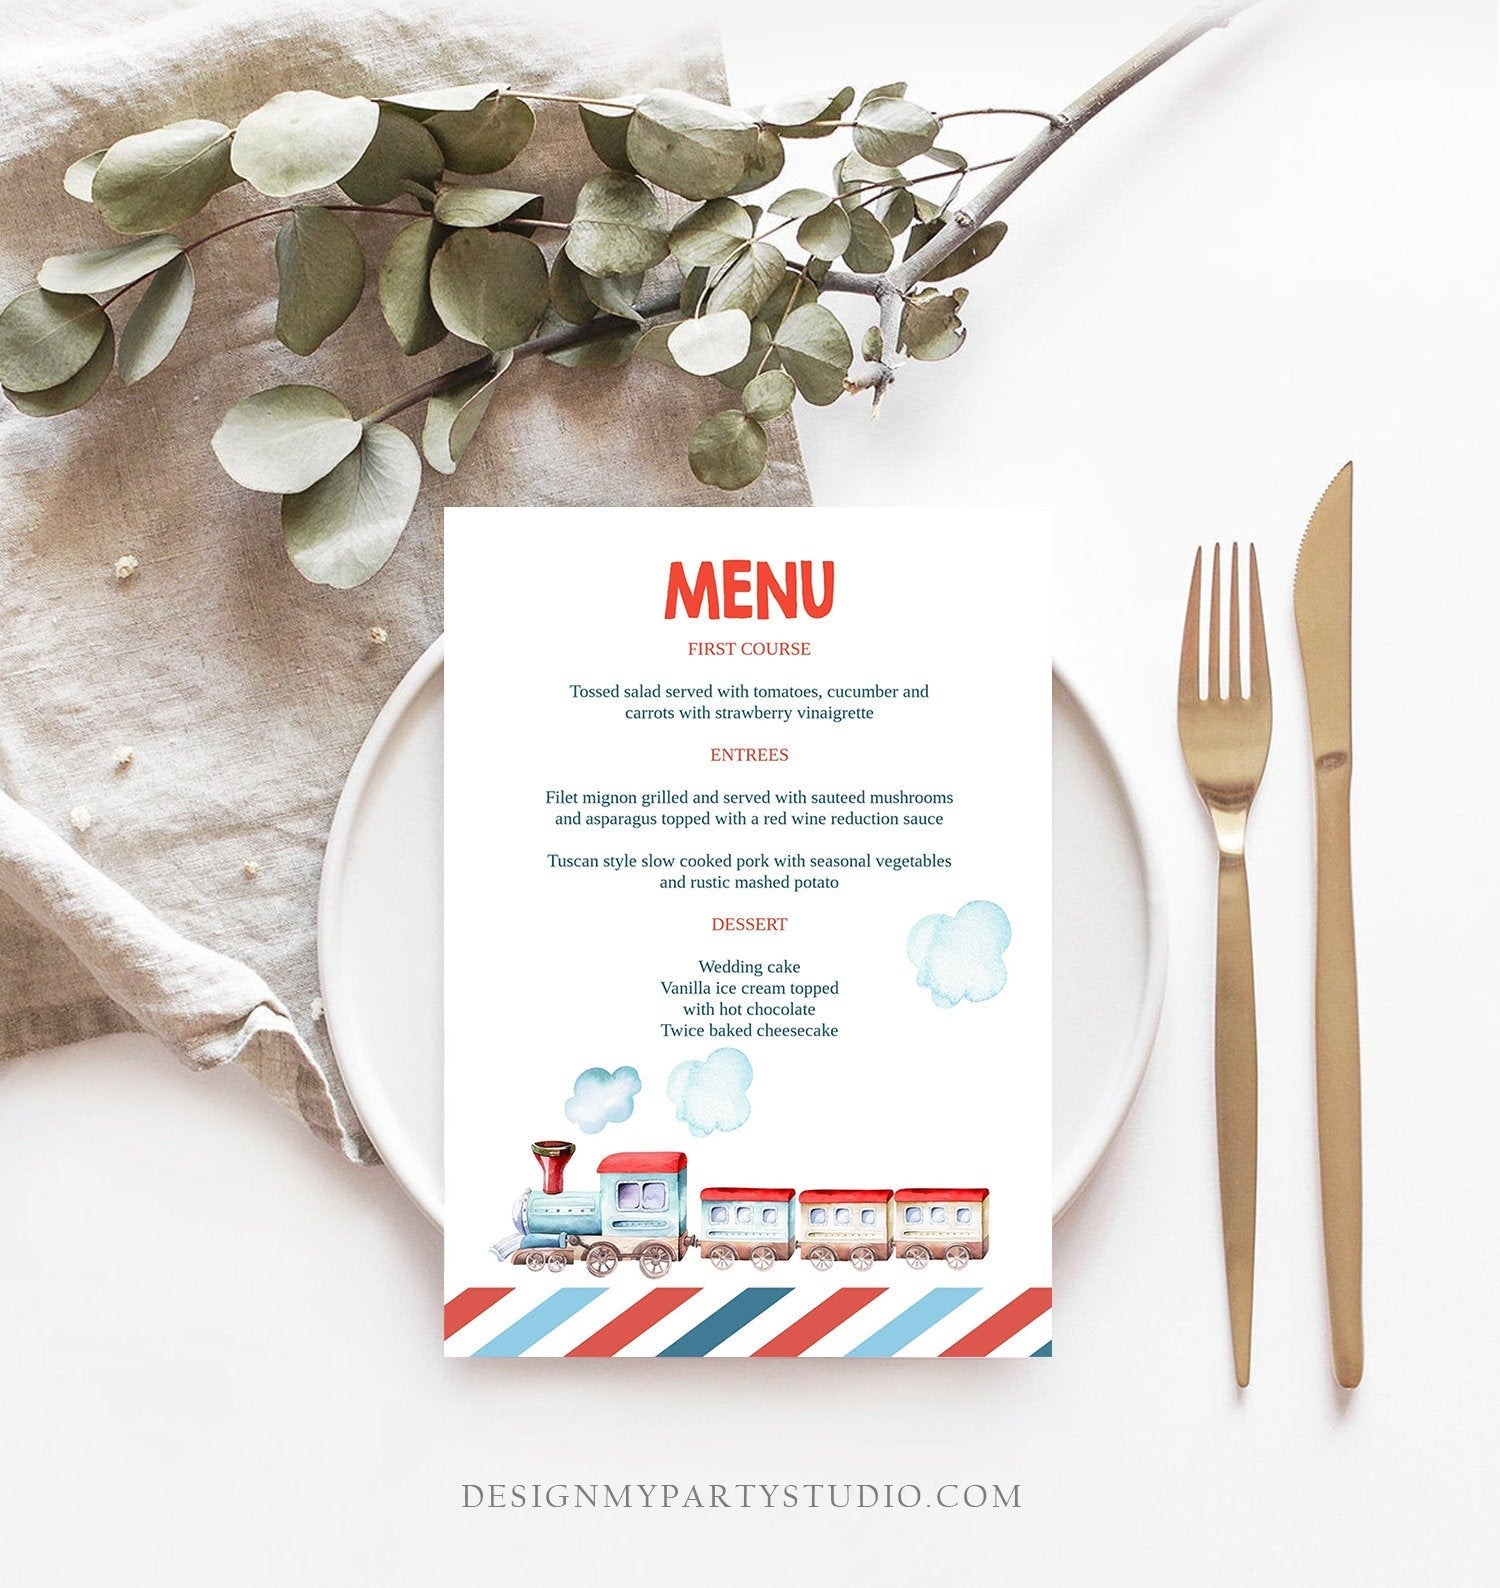 Editable Menu Card Train Birthday Train Decor Vintage Train Table Setting Railroad Instant Download Printable Menu Template Corjl 0149